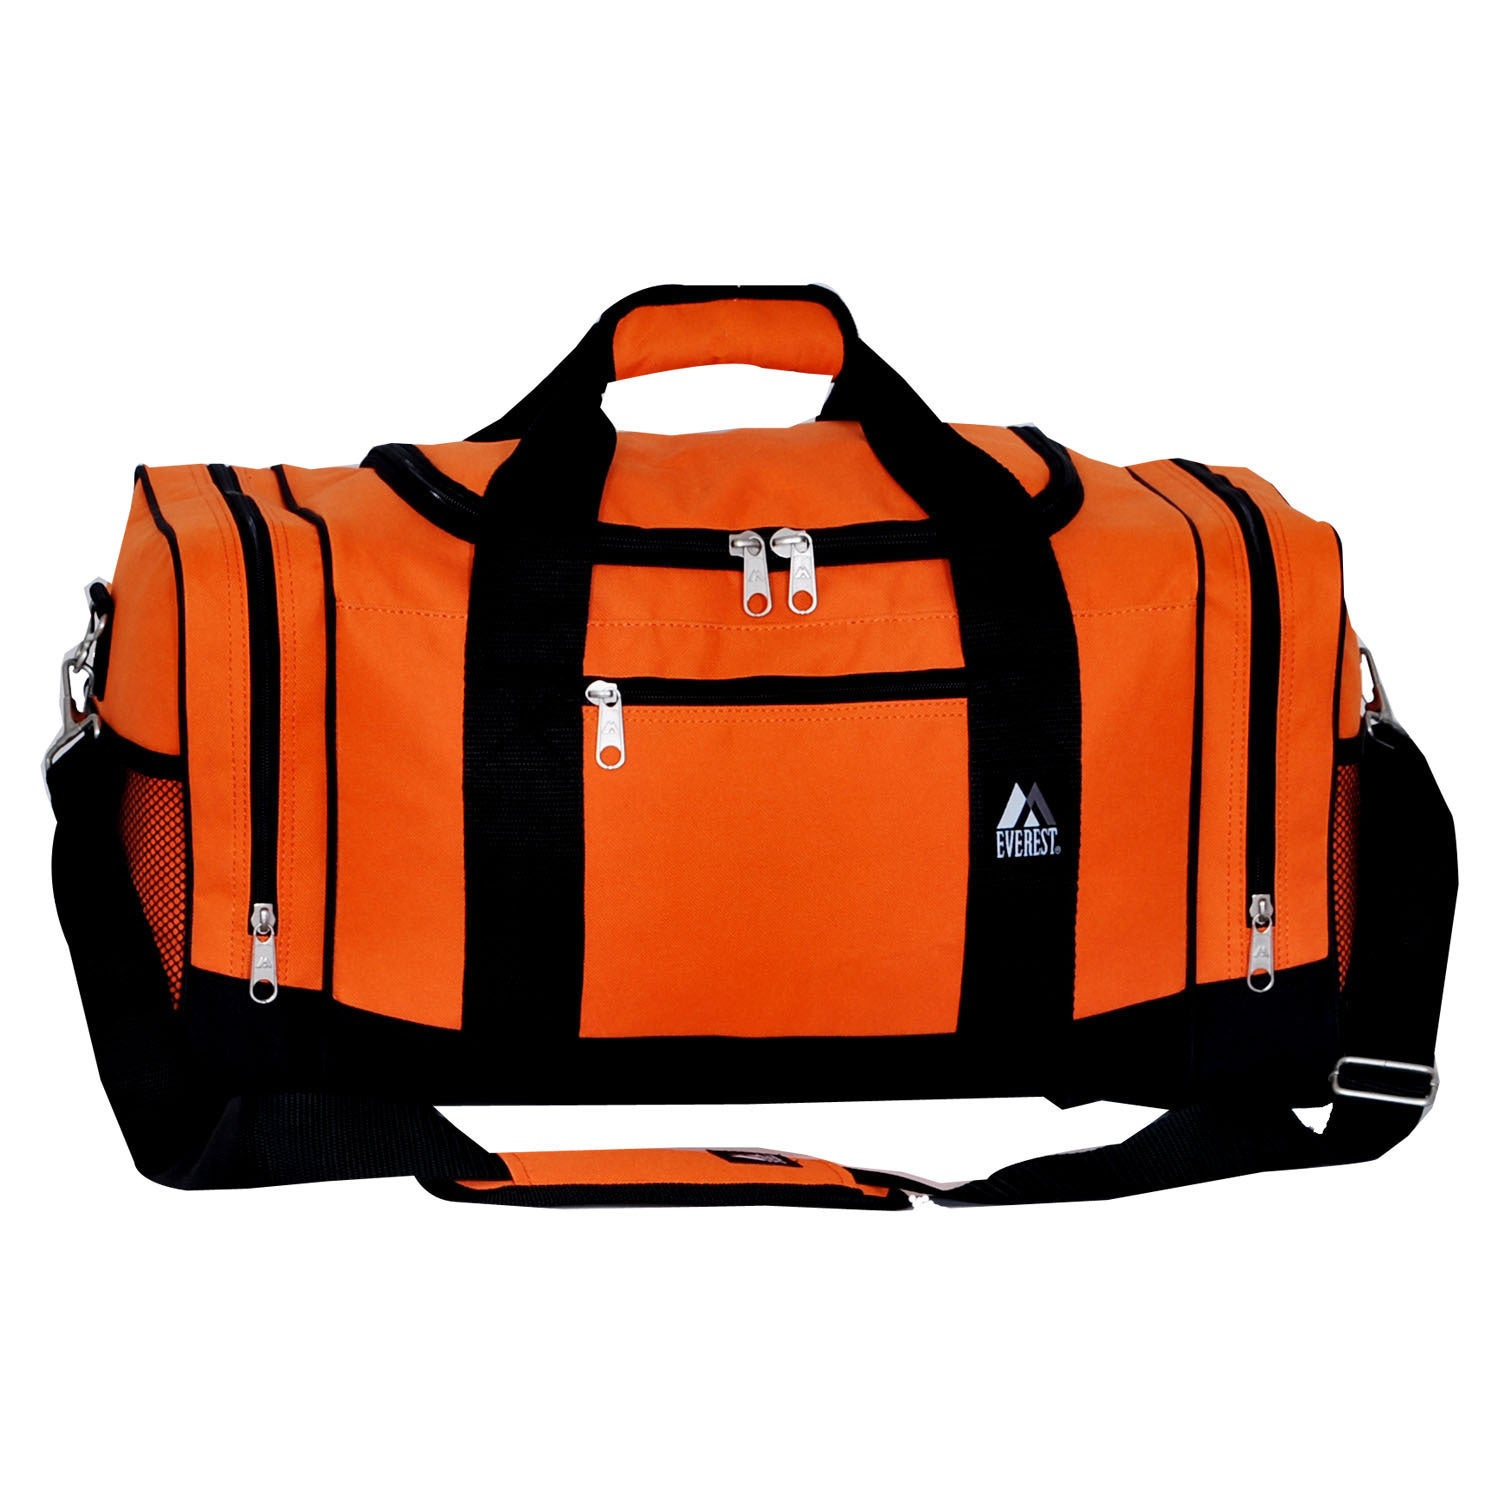 33912b10b211 Shop Everest 20-inch Sporty Gear Polyester Carry On Duffel Bag with Strap - Free  Shipping On Orders Over  45 - Overstock - 6022119